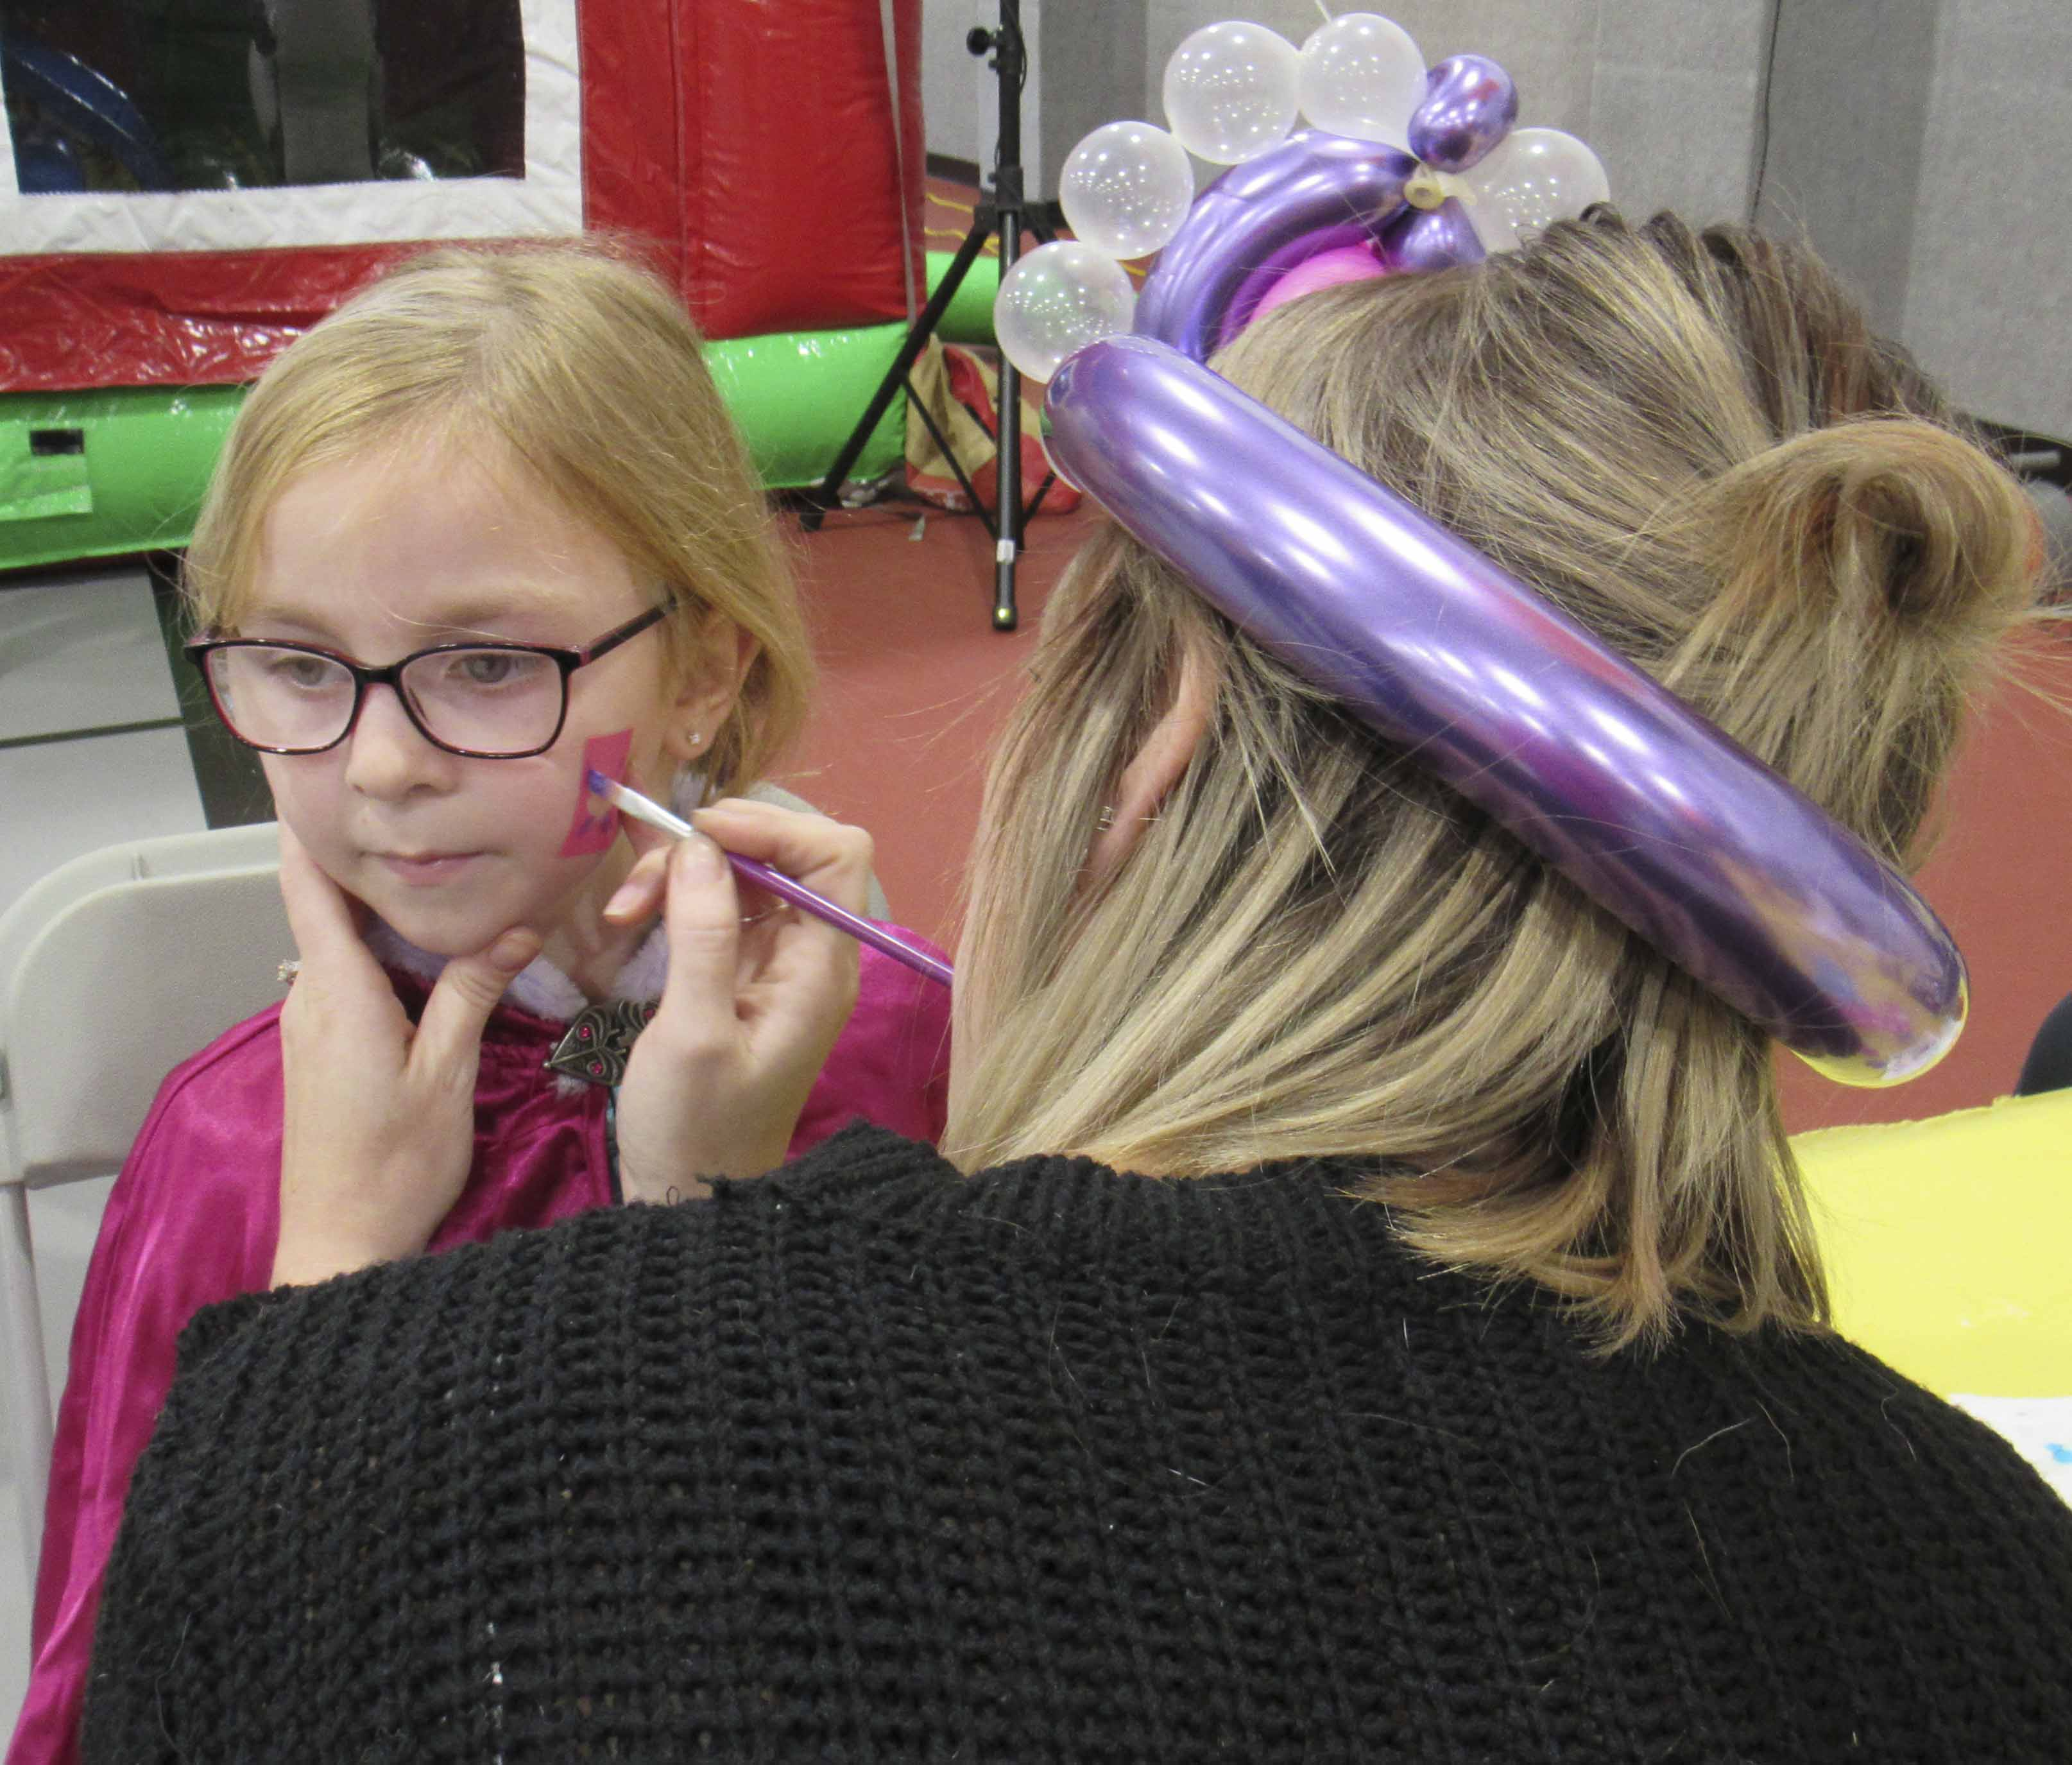 Austin's Halloween Fun Night featured bounces houses, food, balloon animals, and family-friendly entertainment. Blakeleigh Light of Anamosa also got her face painted.